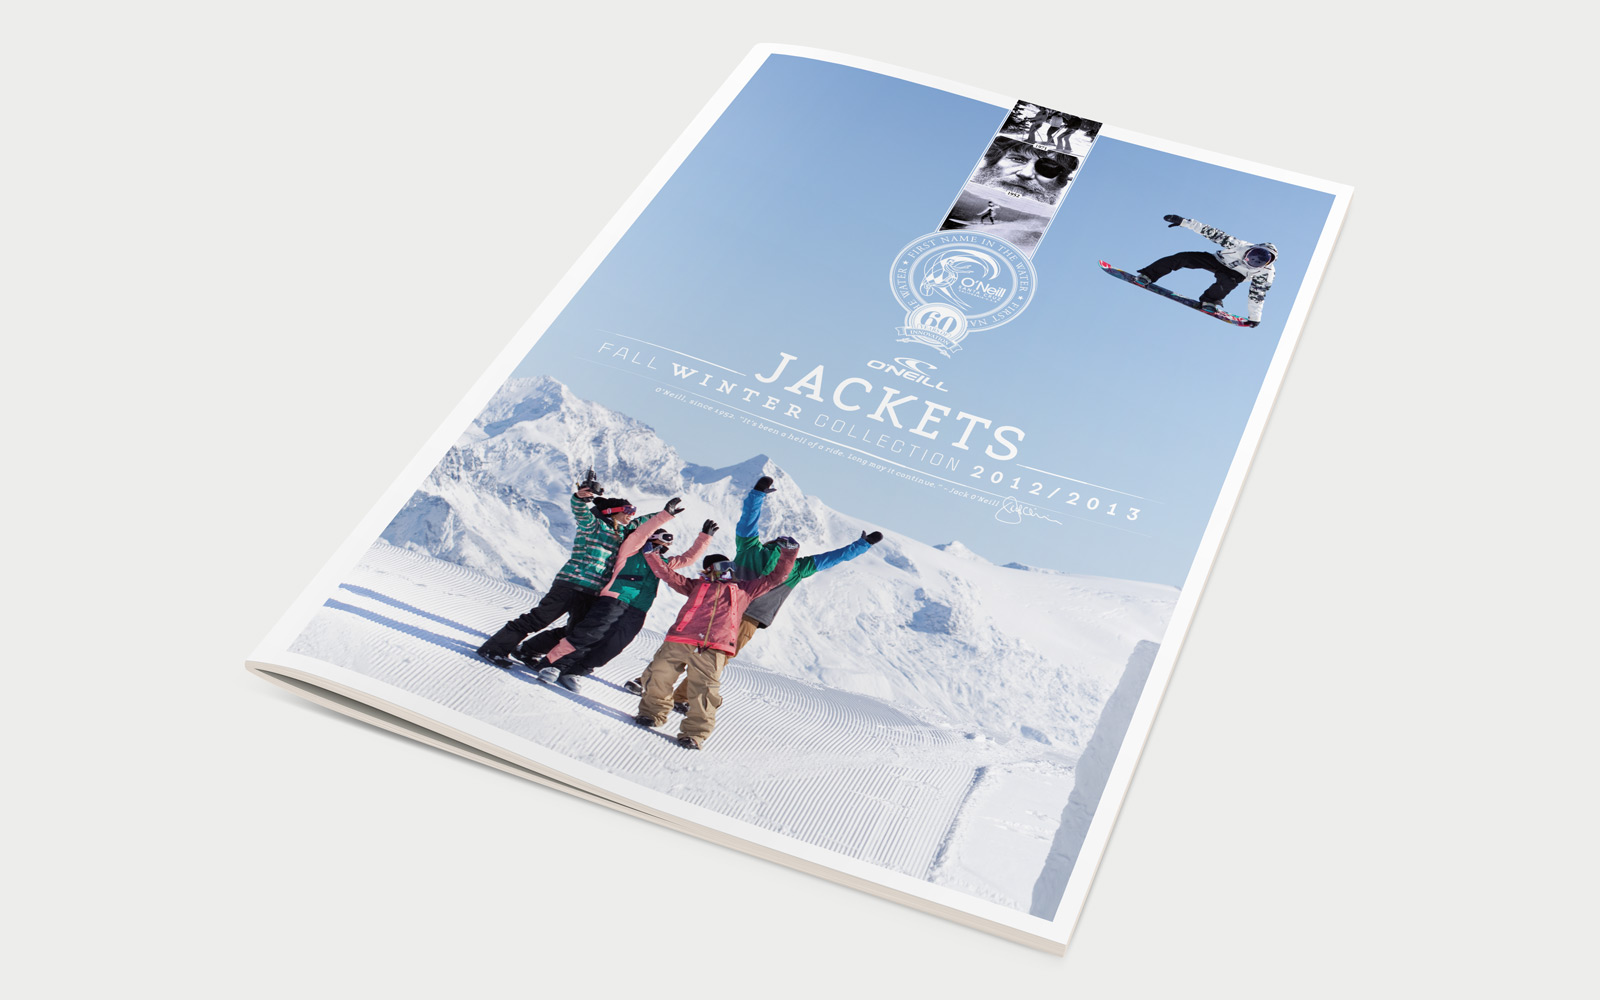 O´neill Katalog Winter Collection 2012/2013 Cover